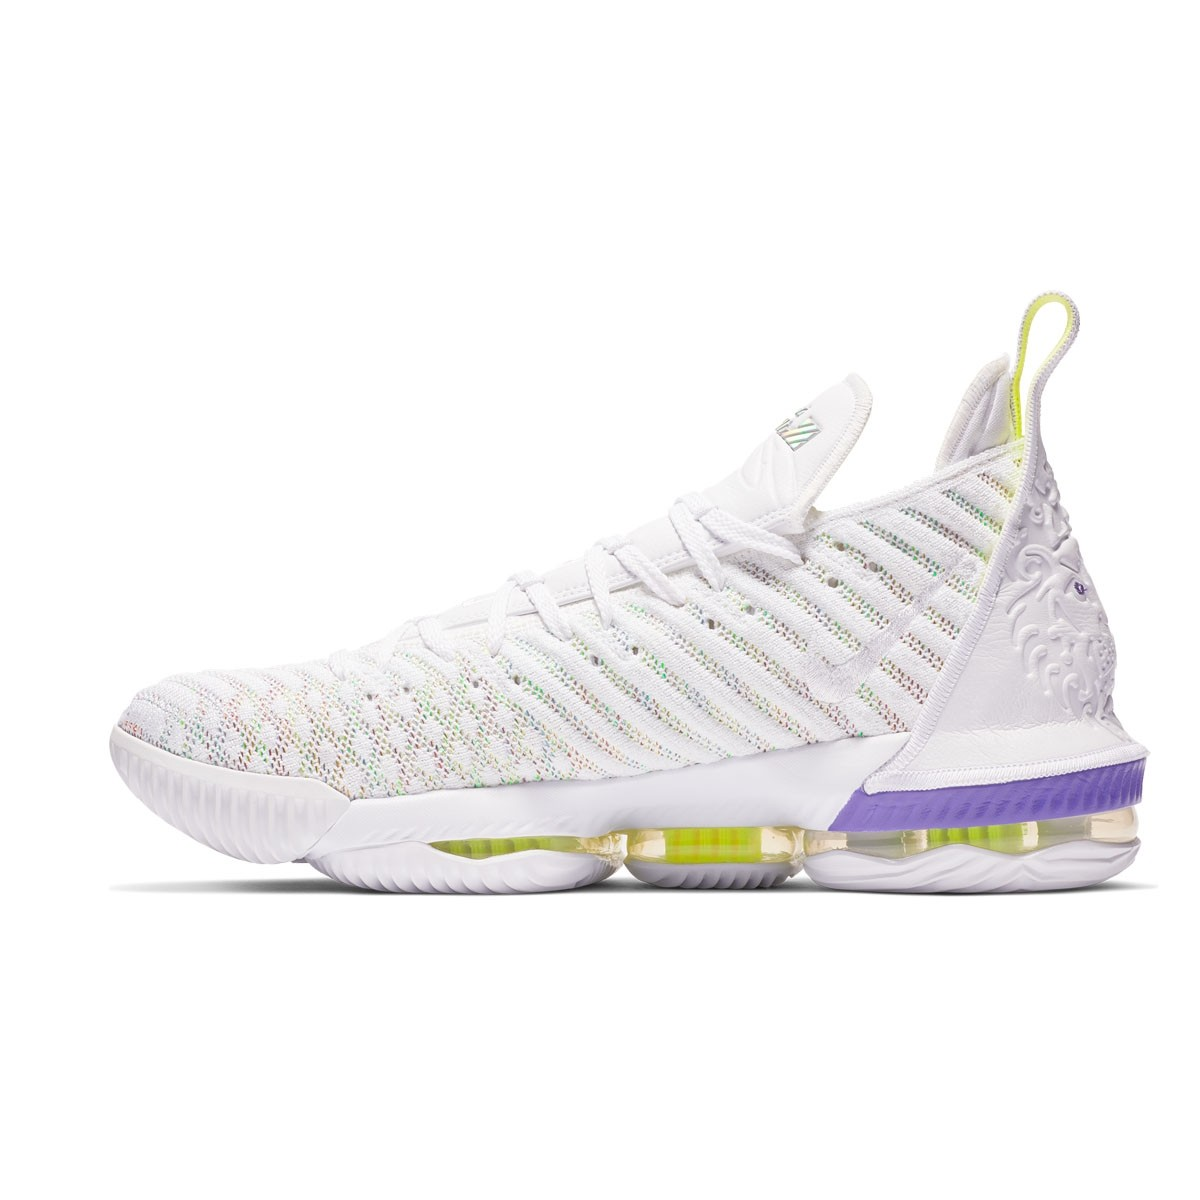 41c7f026a42cb Buy Nike Lebron XVI  Buzz Lightyear  Basketball shoes   sneakers